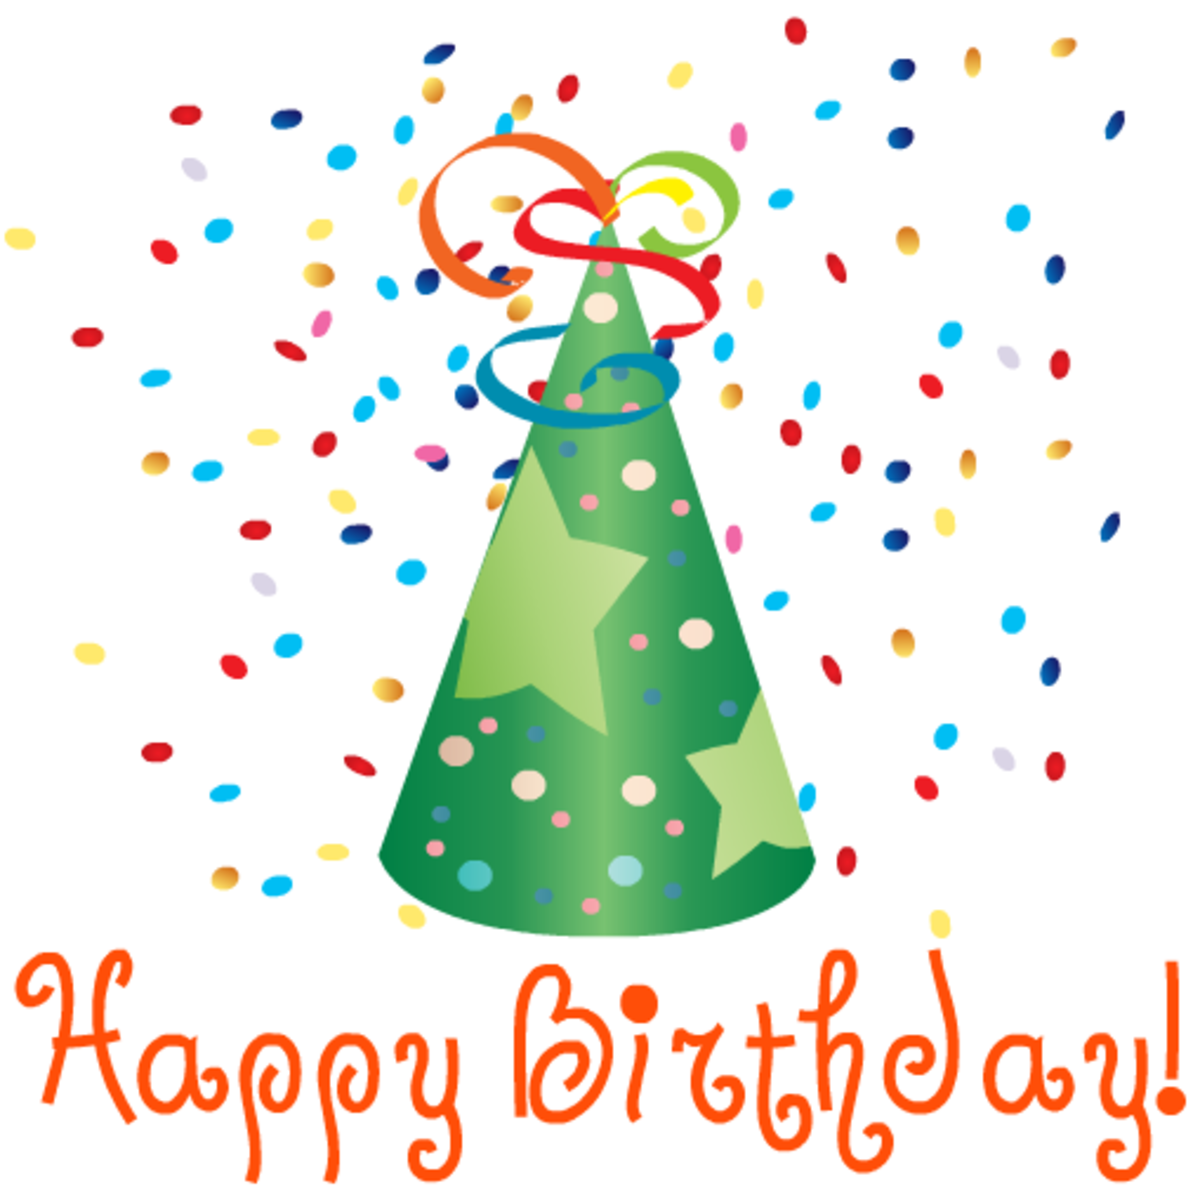 Green birthday hat and present clipart